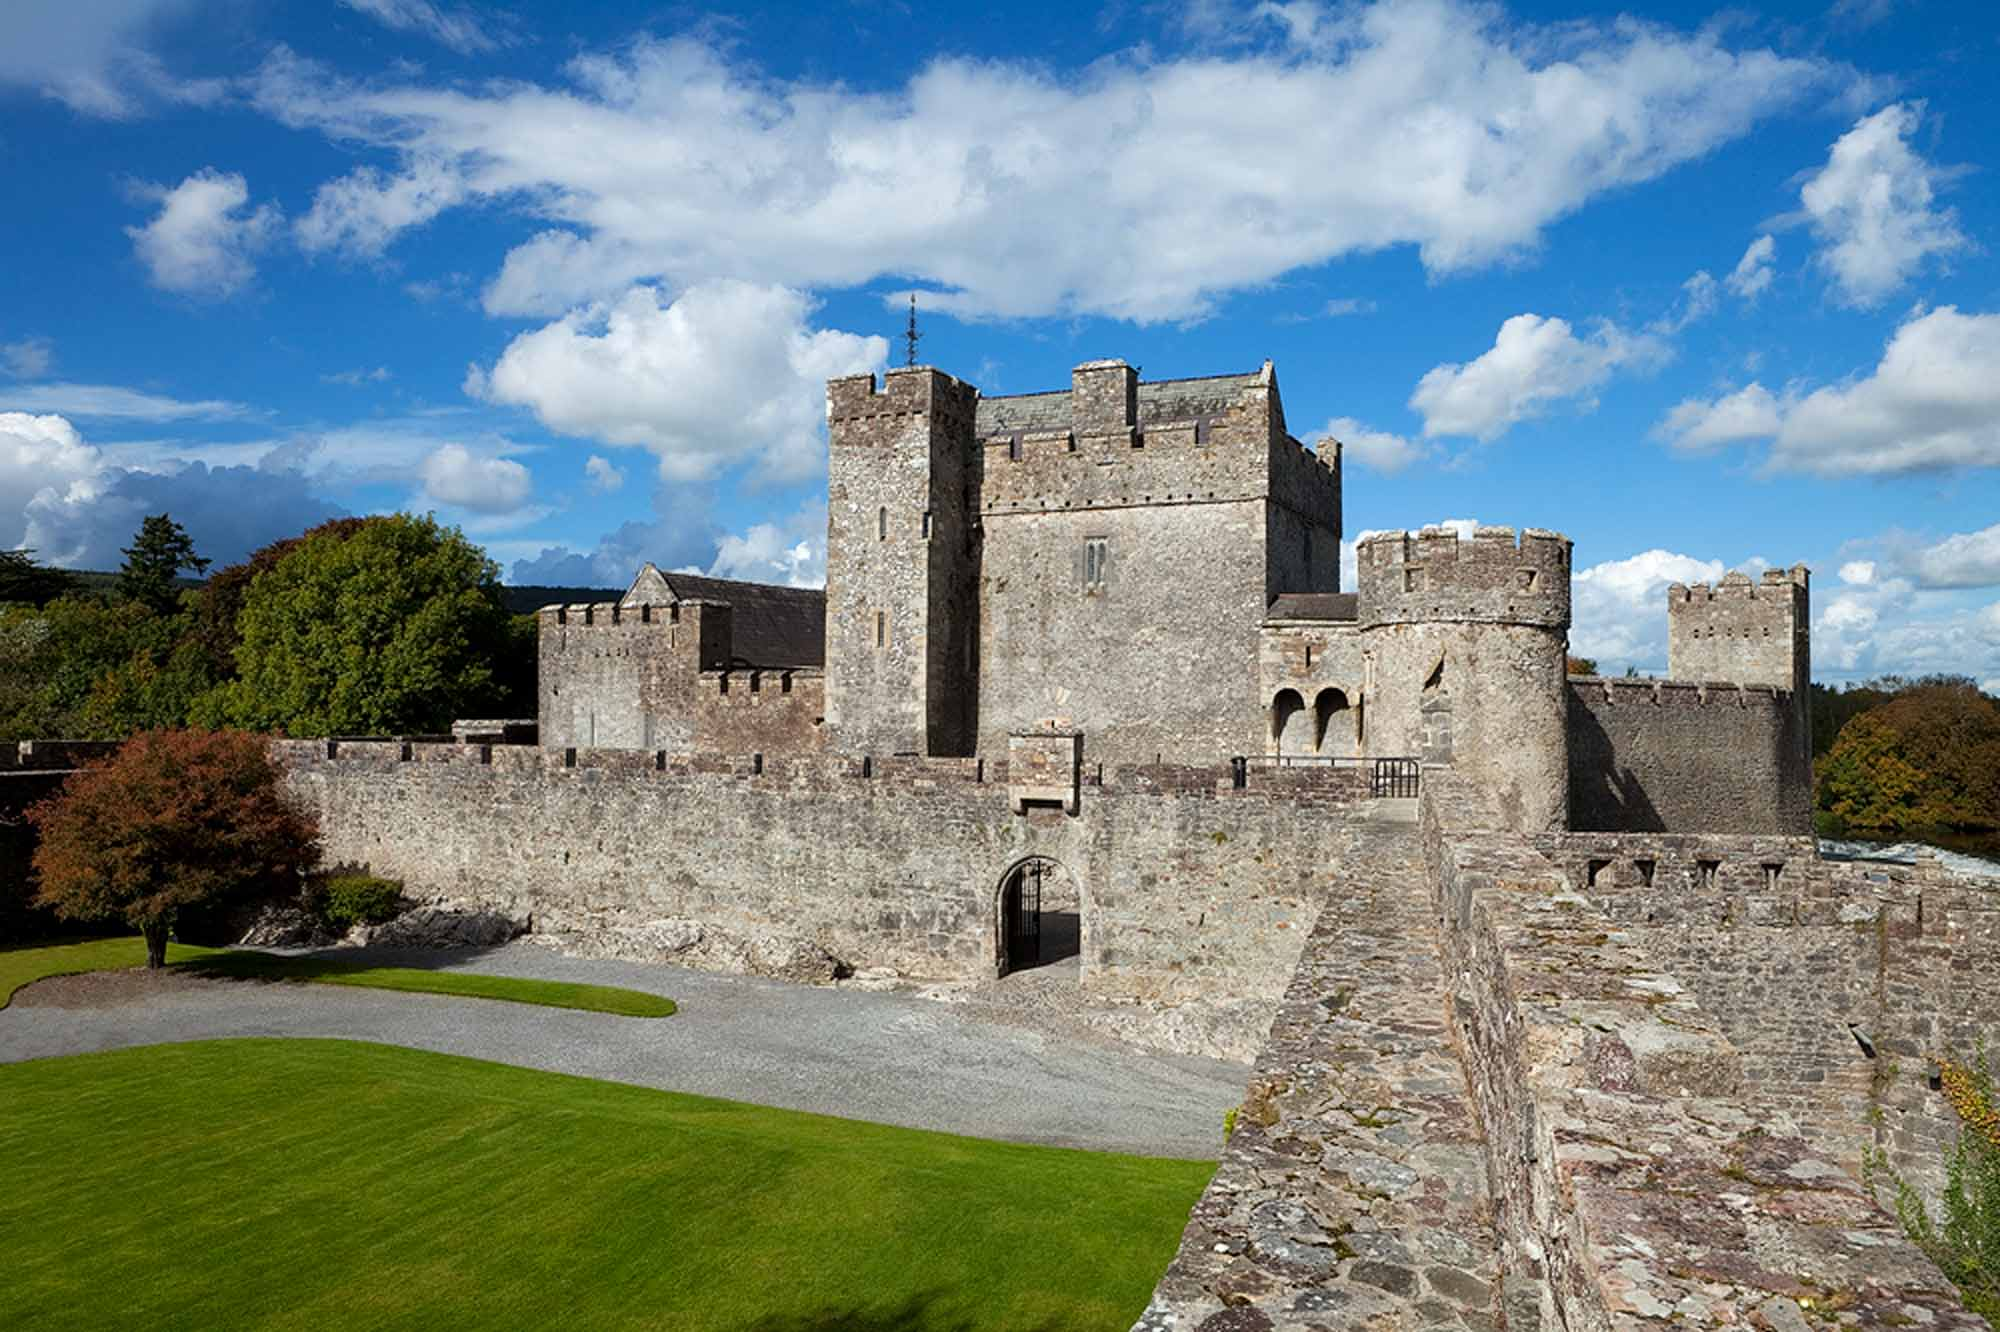 View of Cahir Castle from along the walls.